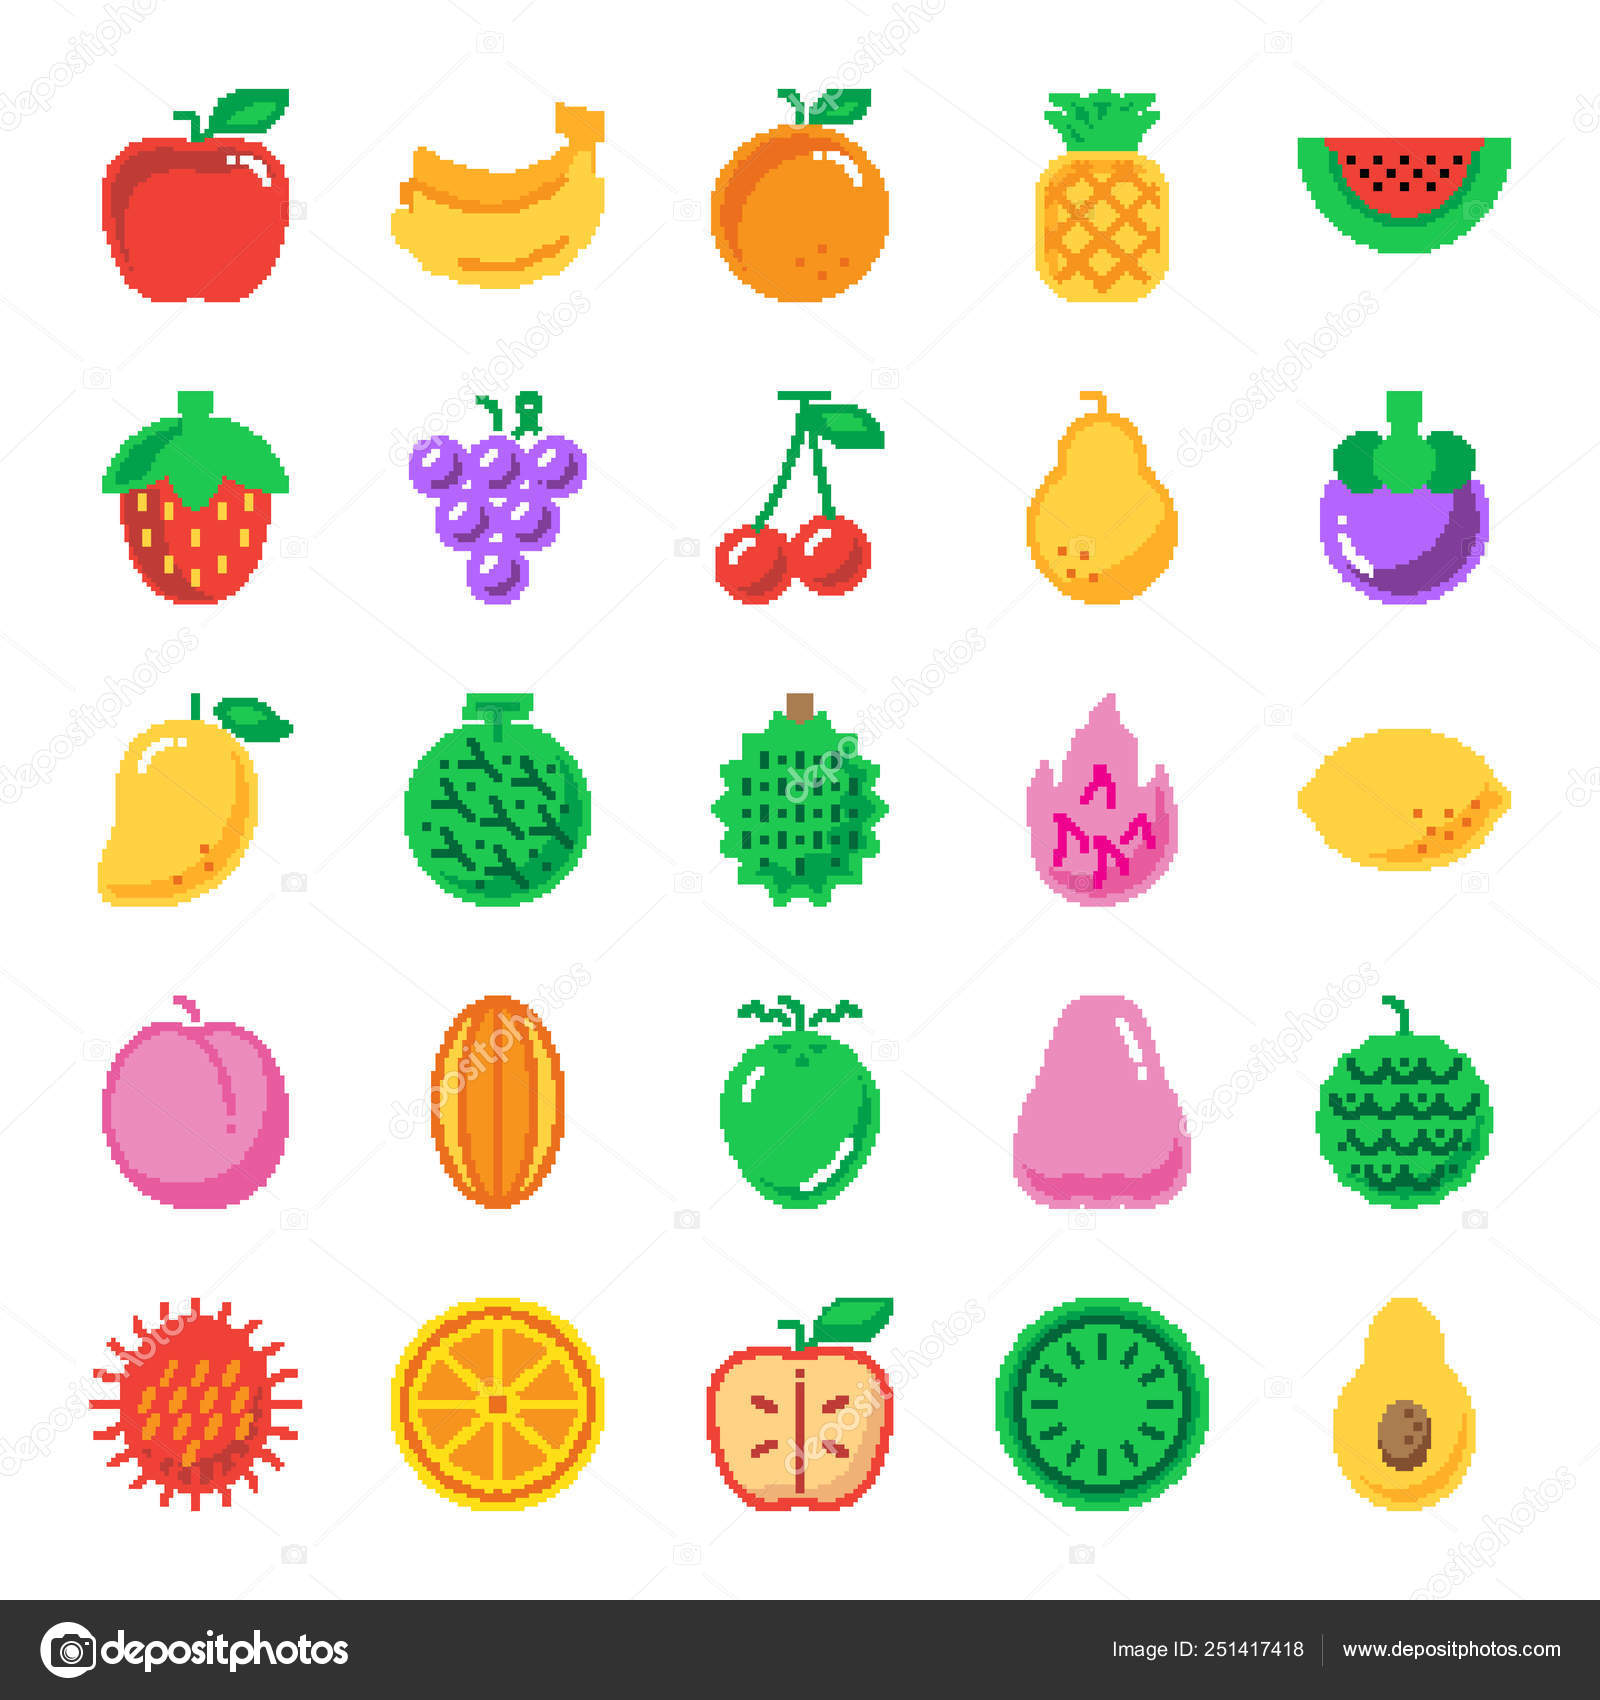 ᐈ 8 Bit Fruit Stock Vectors Royalty Free 8 Bit Fruit